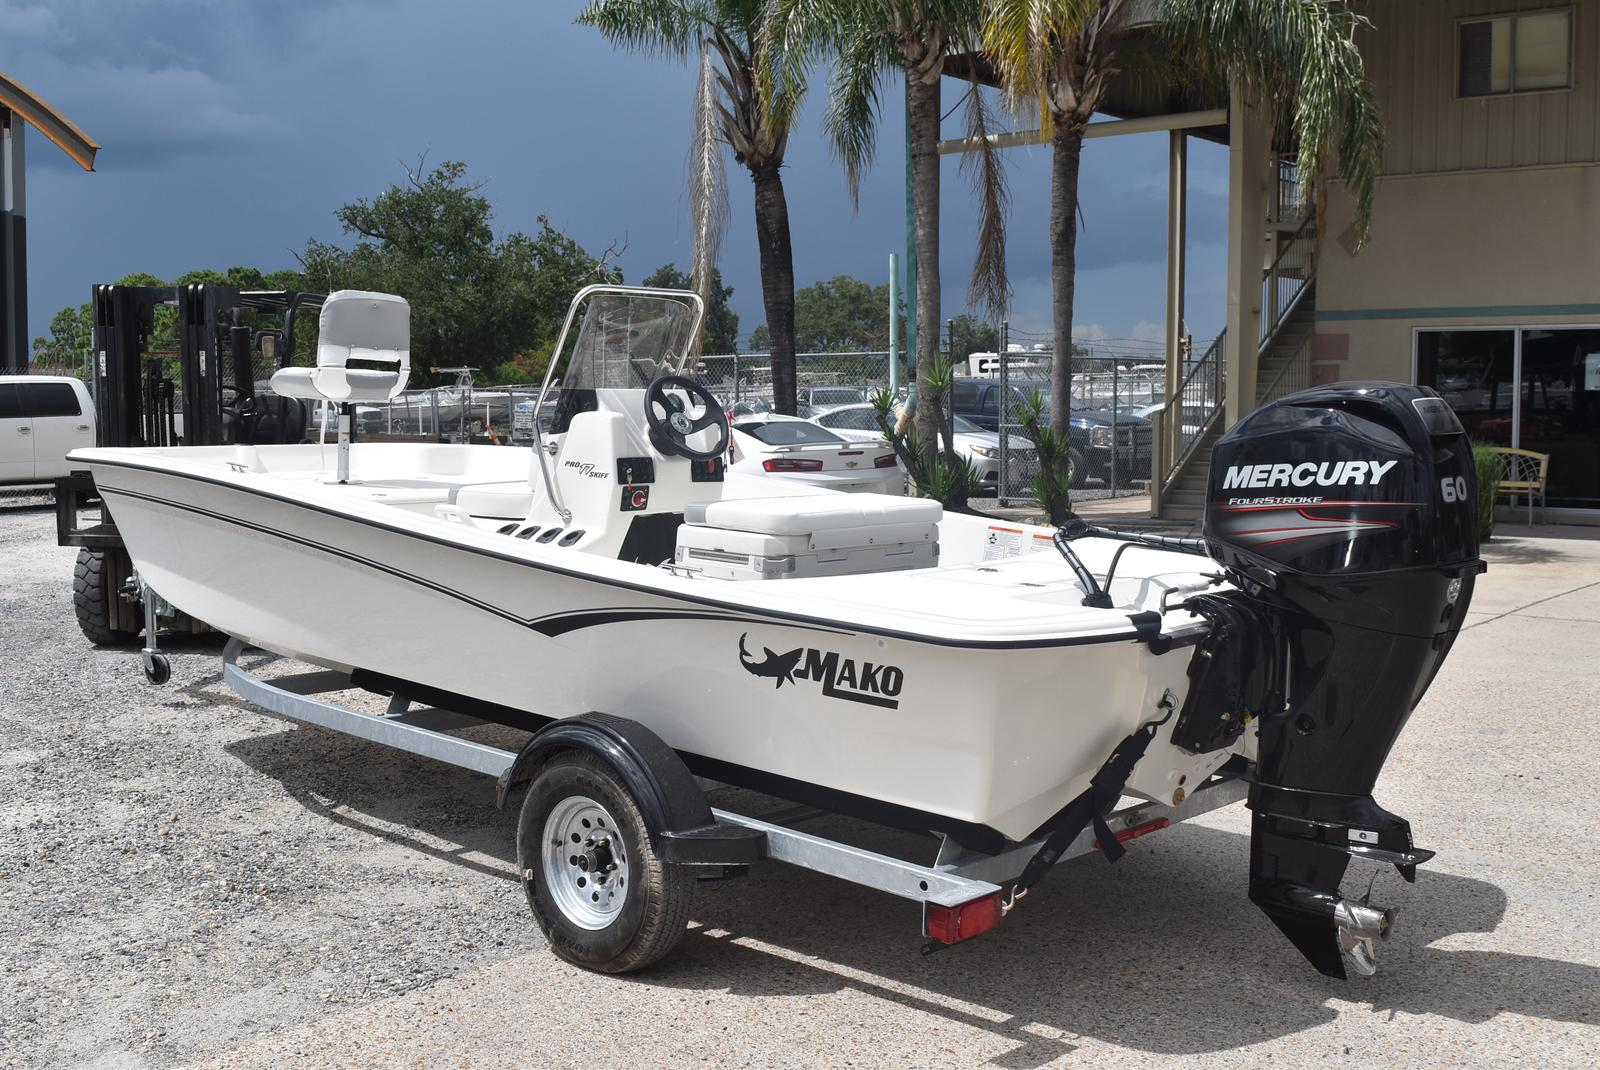 2020 Mako boat for sale, model of the boat is Pro Skiff 17, 75 ELPT & Image # 194 of 702